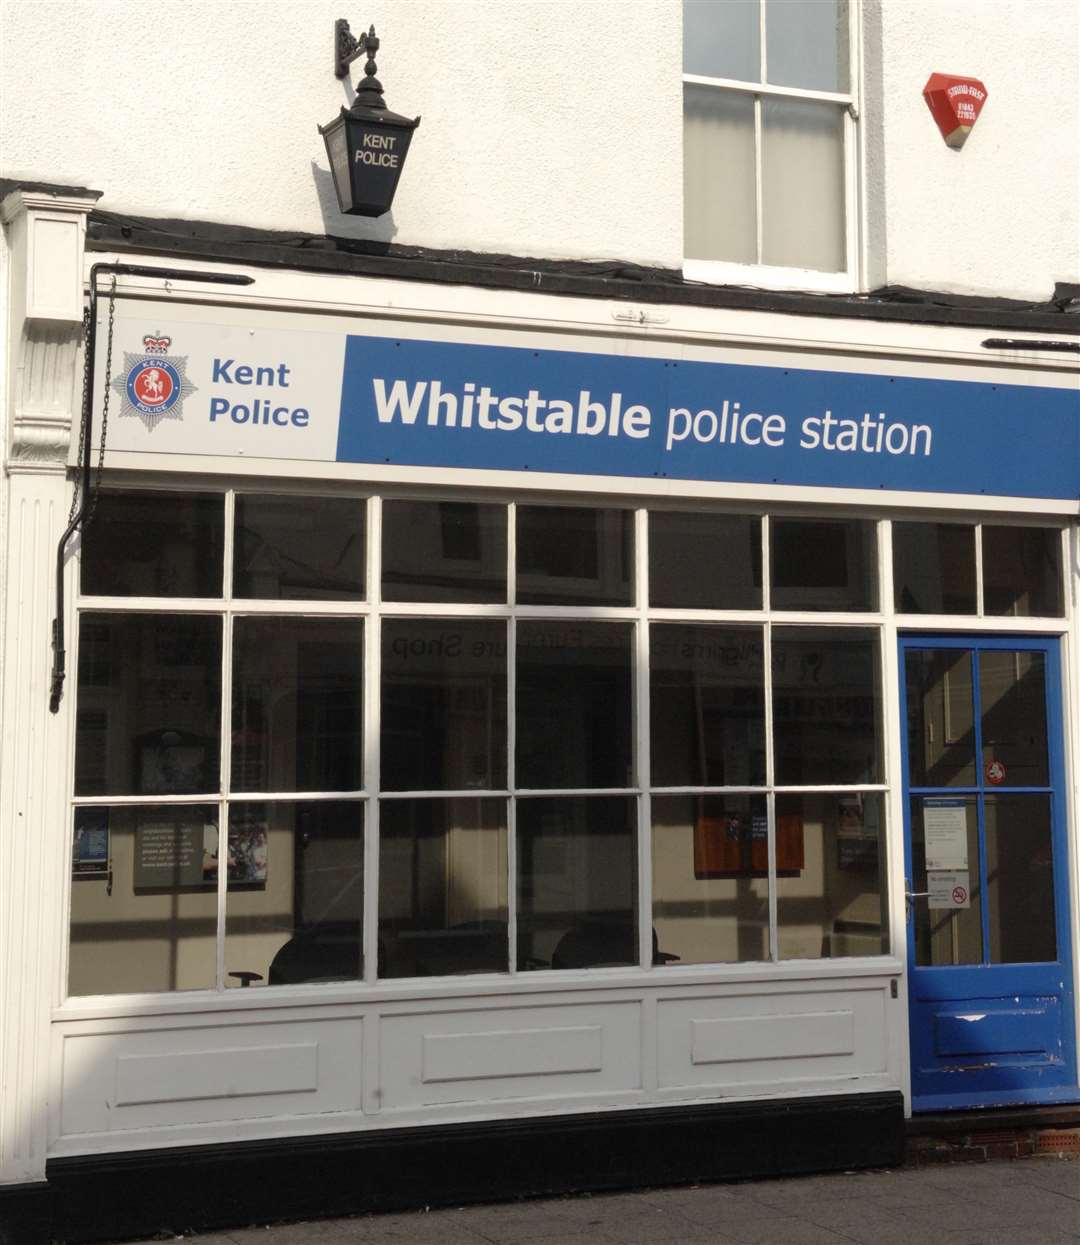 The Whitstable Police Station, photographed in 2012, close to the point at which High Street merges in Oxford Street